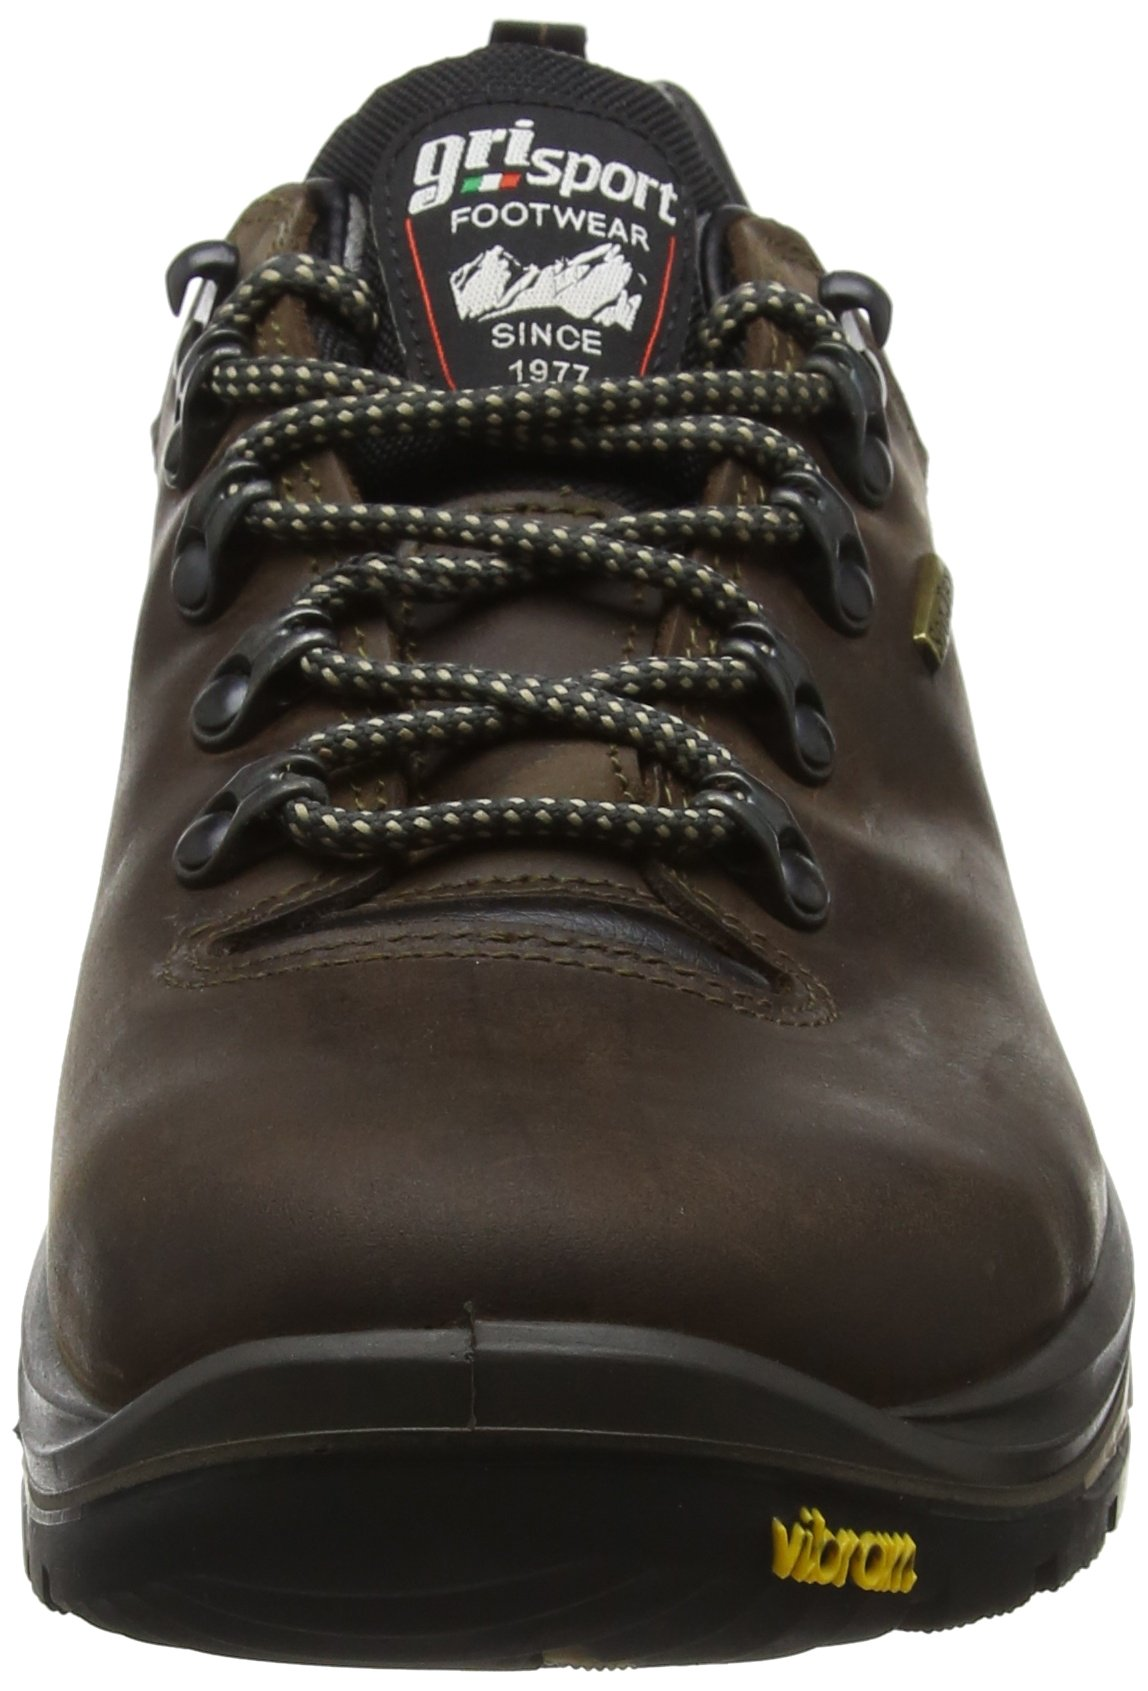 Grisport Men's Warrior Low Rise Hiking Boots 4